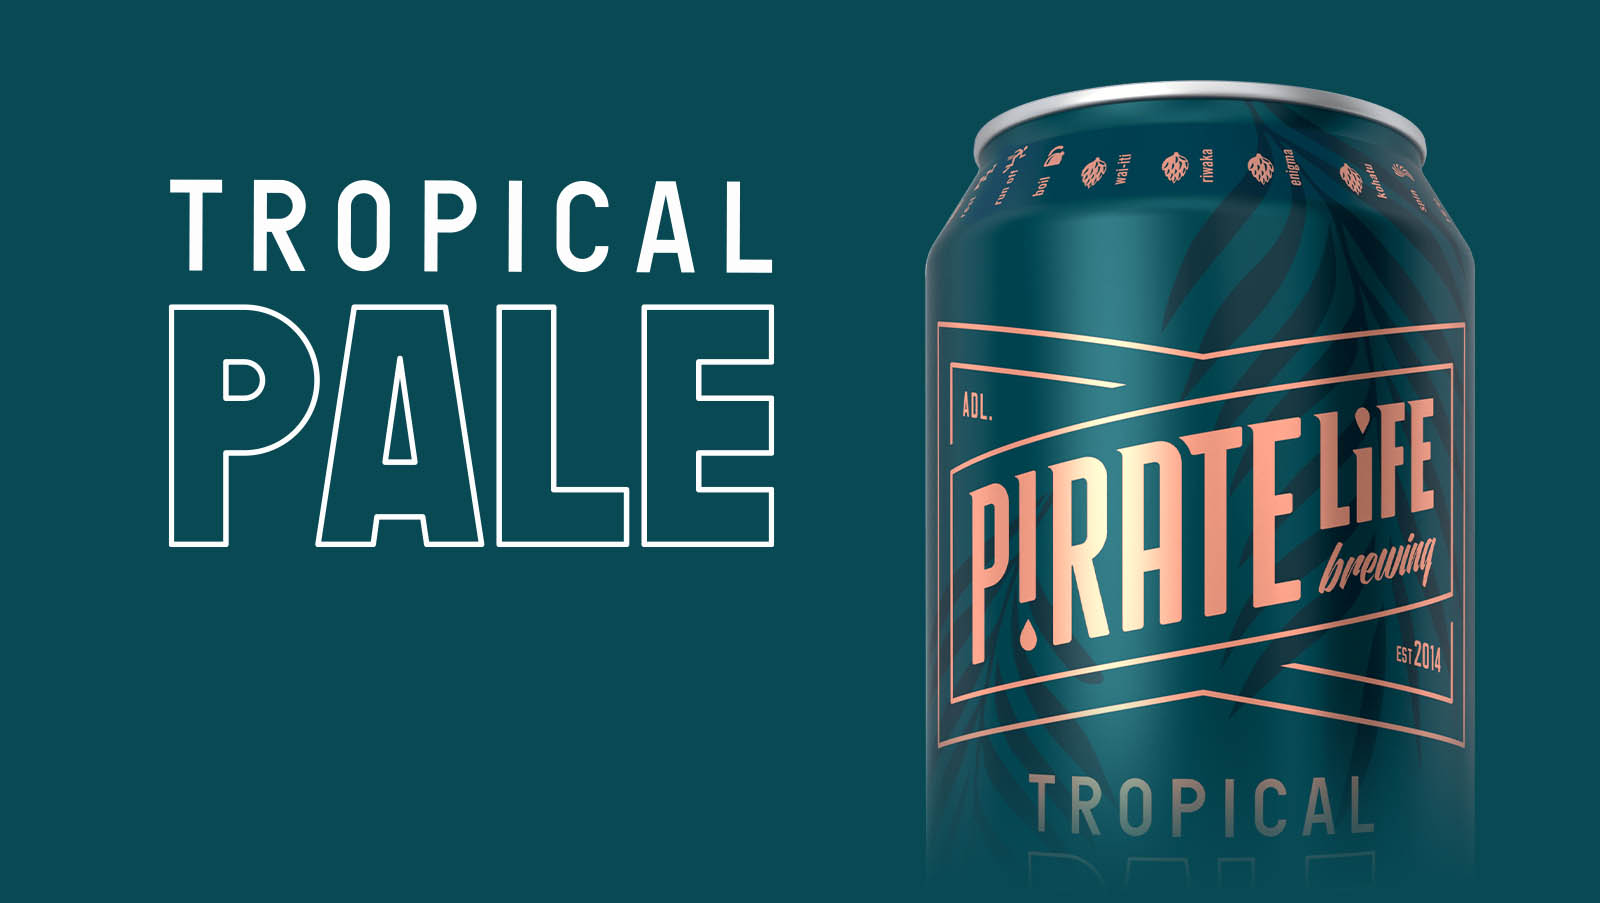 Tropical Pale